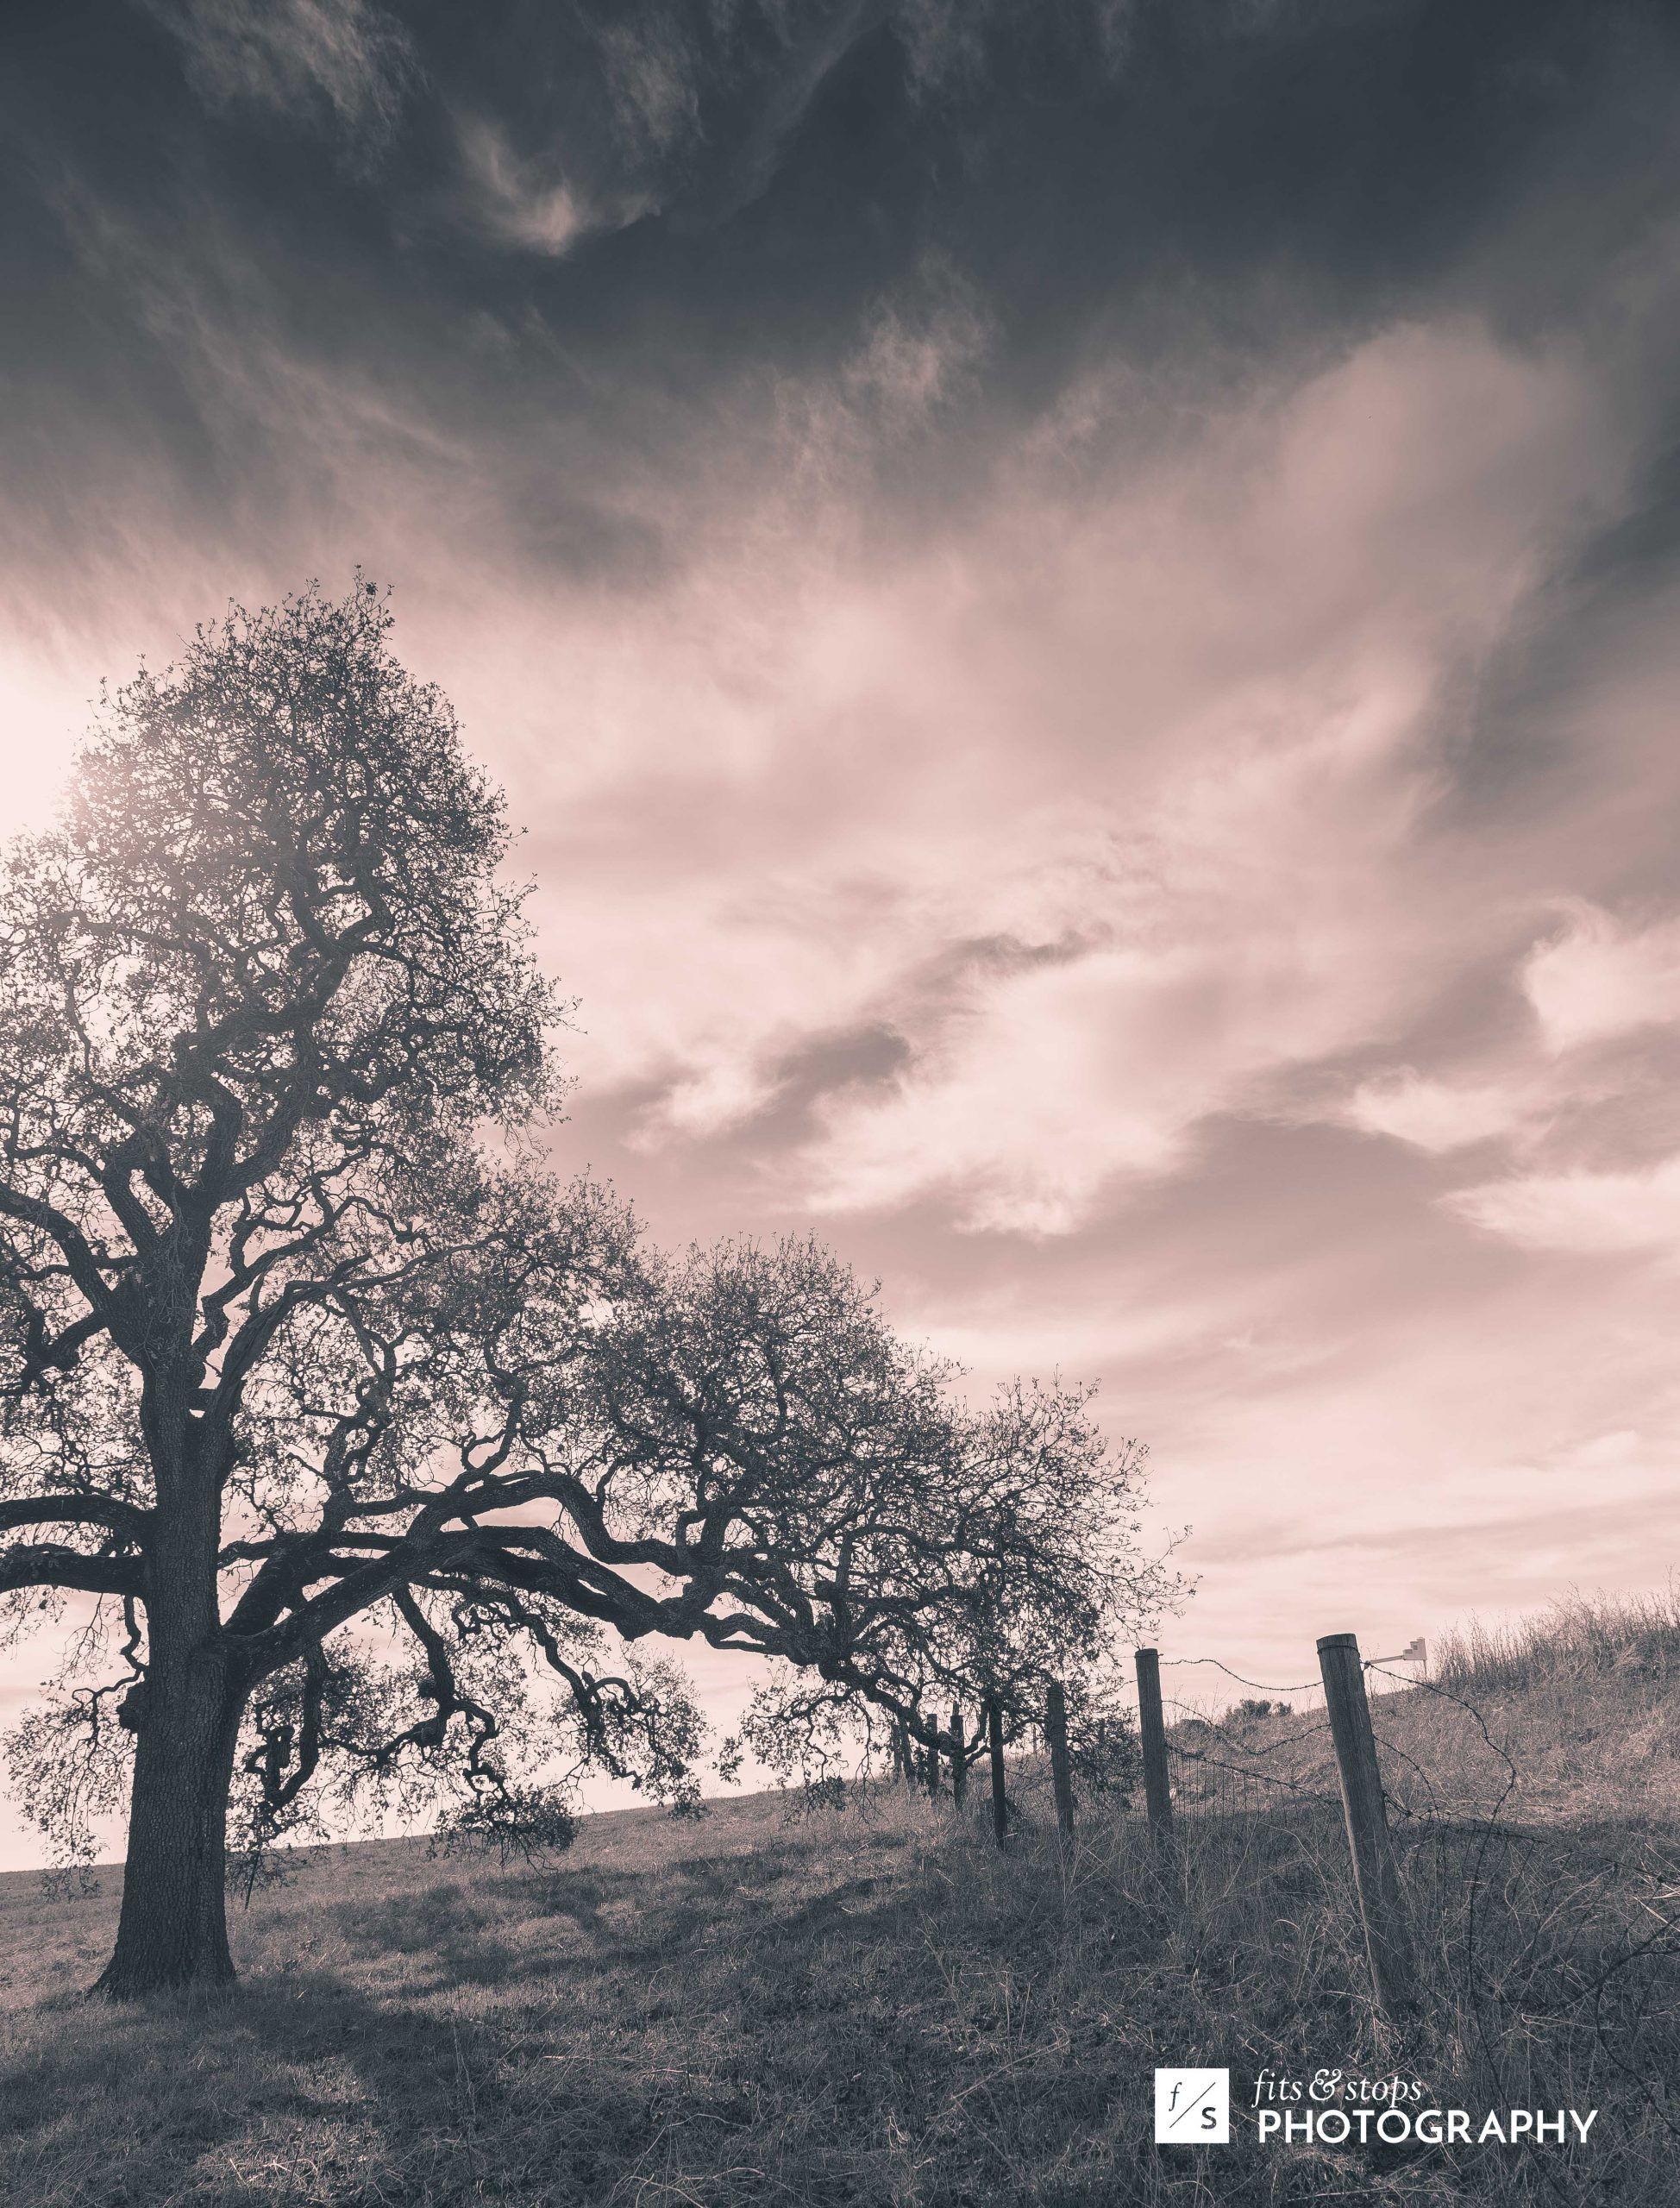 An aged Oak tree sits bare of leaves in the low winter sun, with branches that have begun to lean low to the ground with age. Taken near Napa, California.